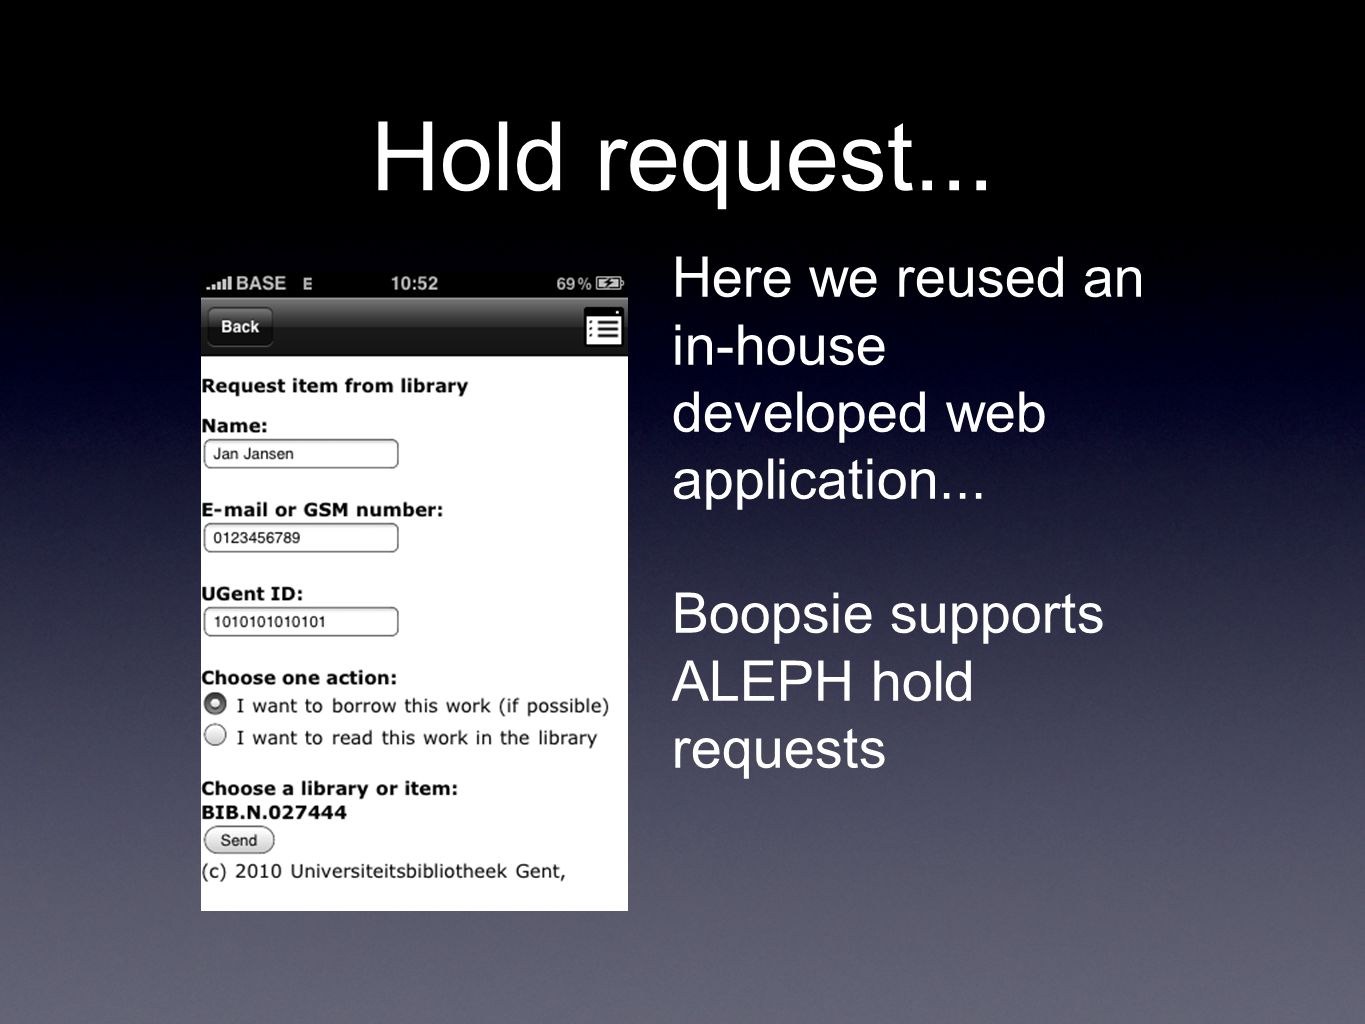 Hold request...Here we reused an in-house developed web application...